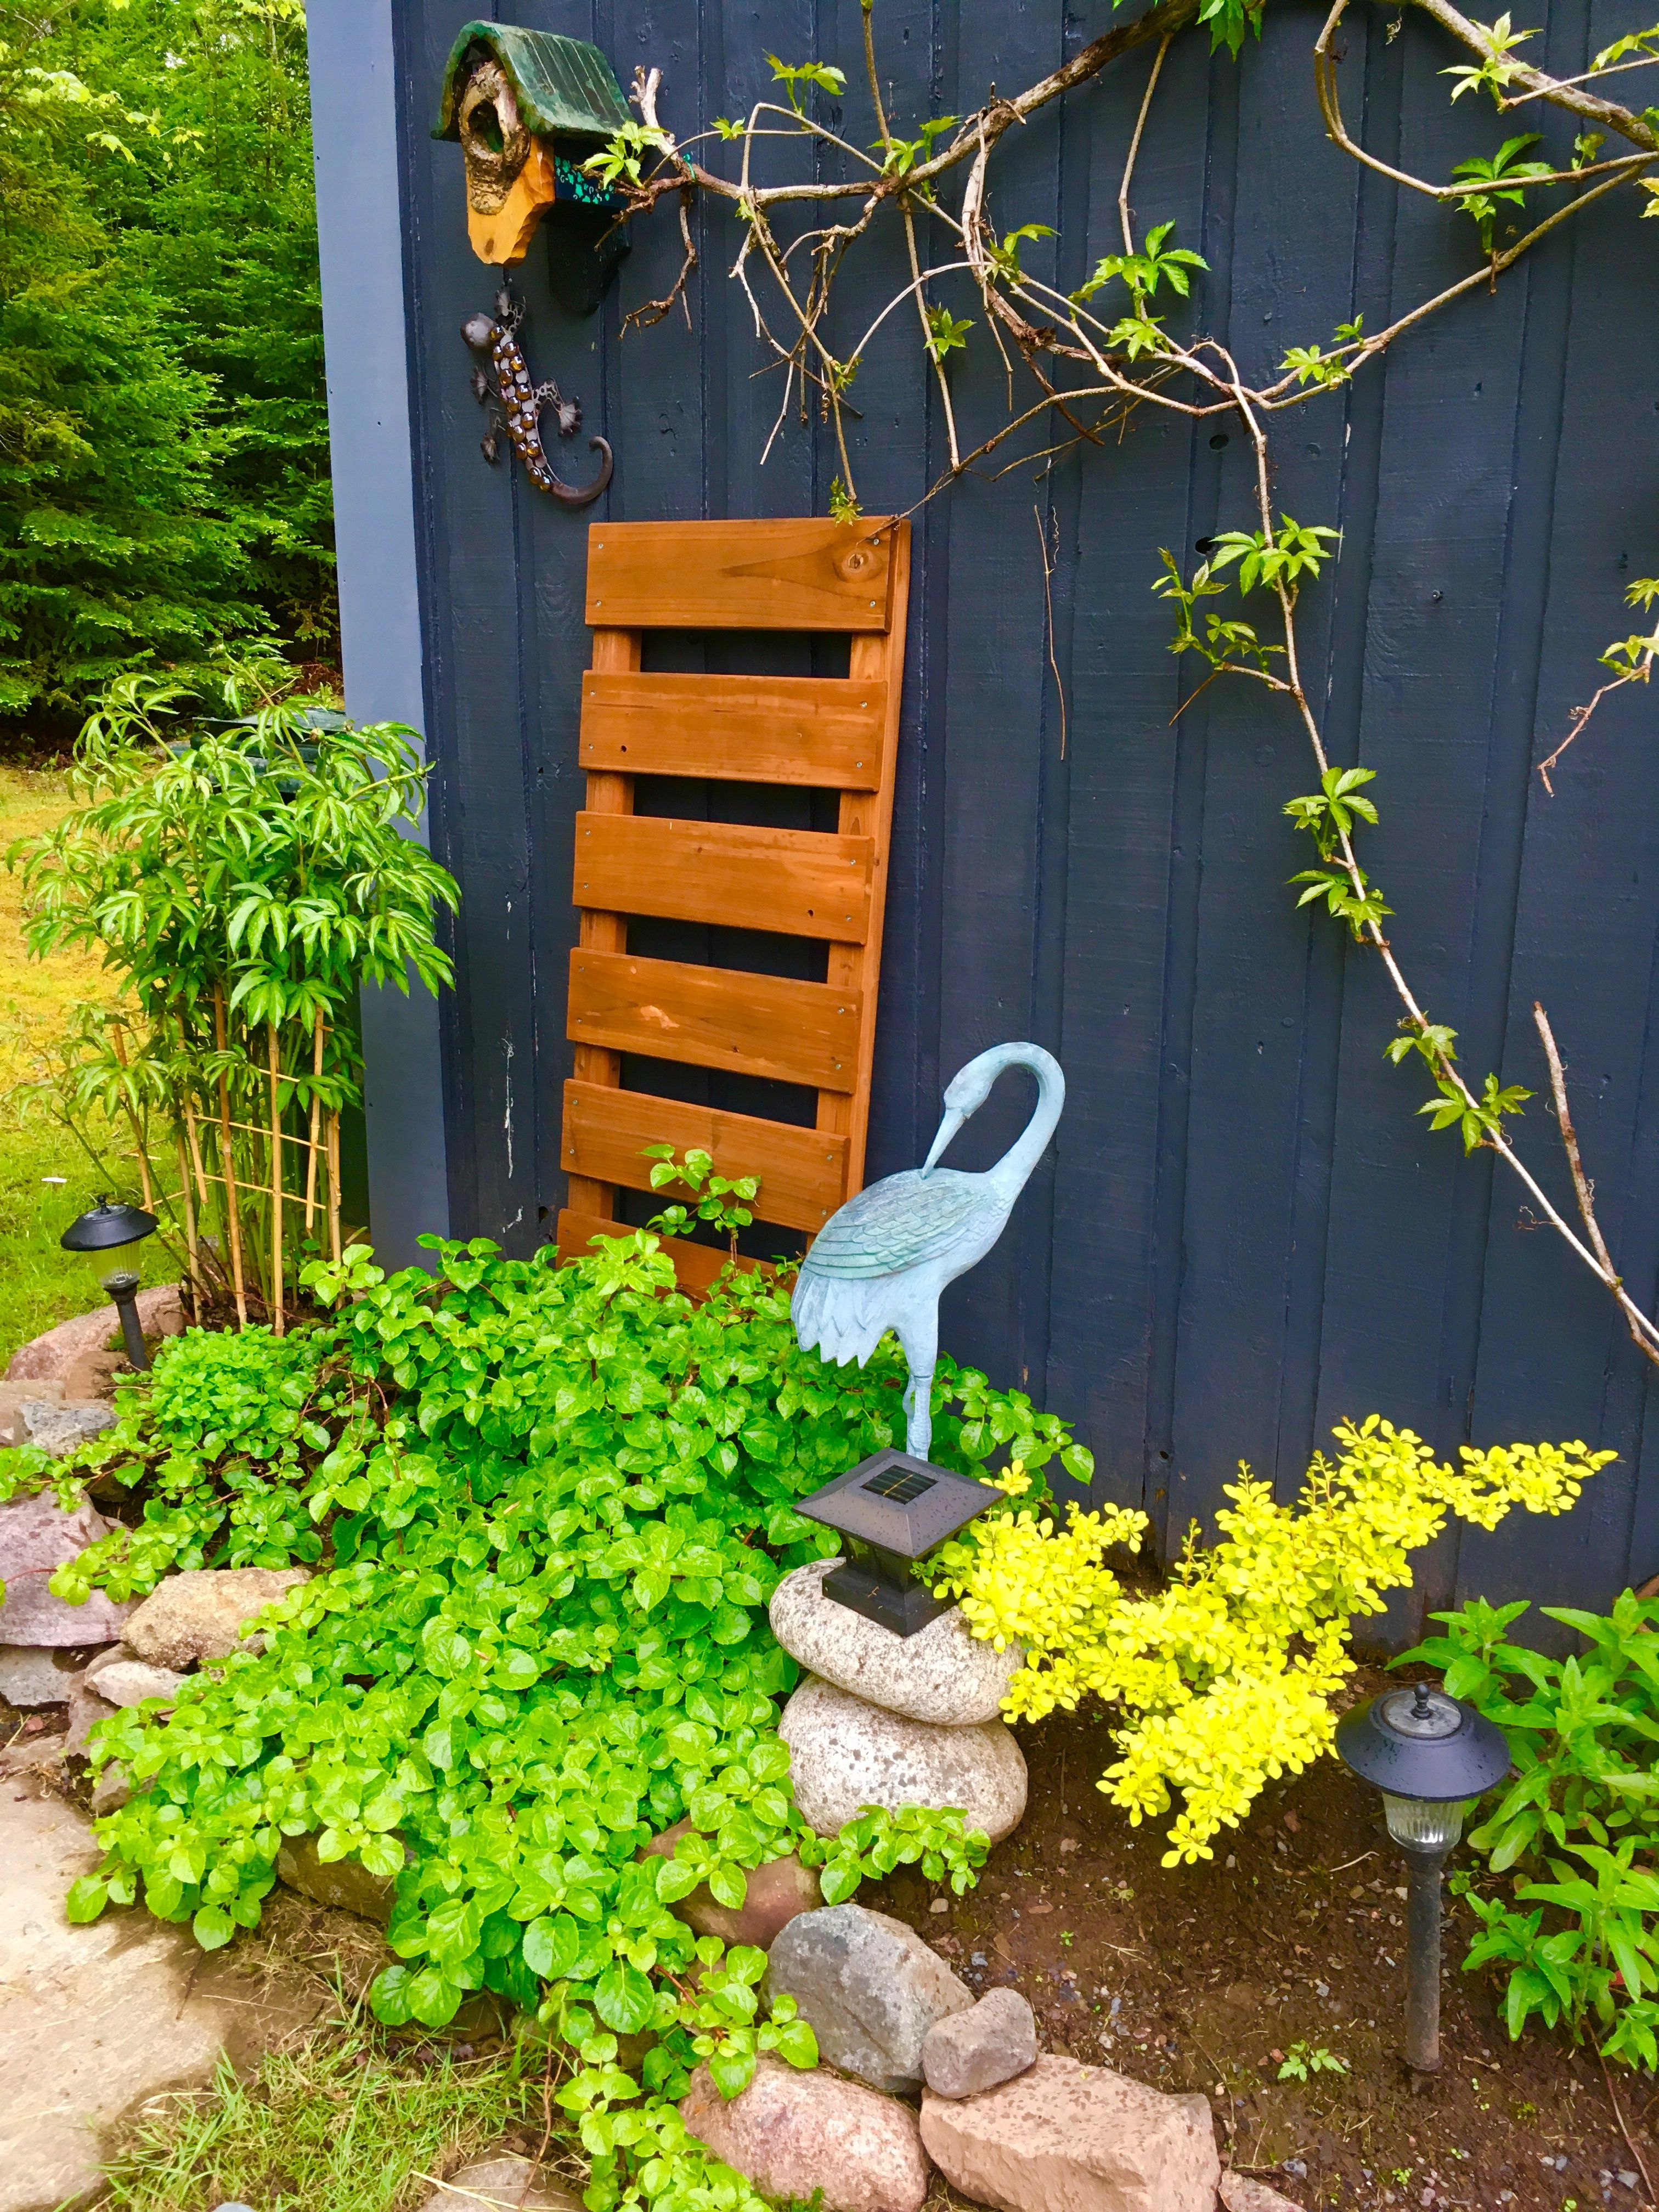 Pin By Denise On Landscapes And Garden Ideas - Pinterest